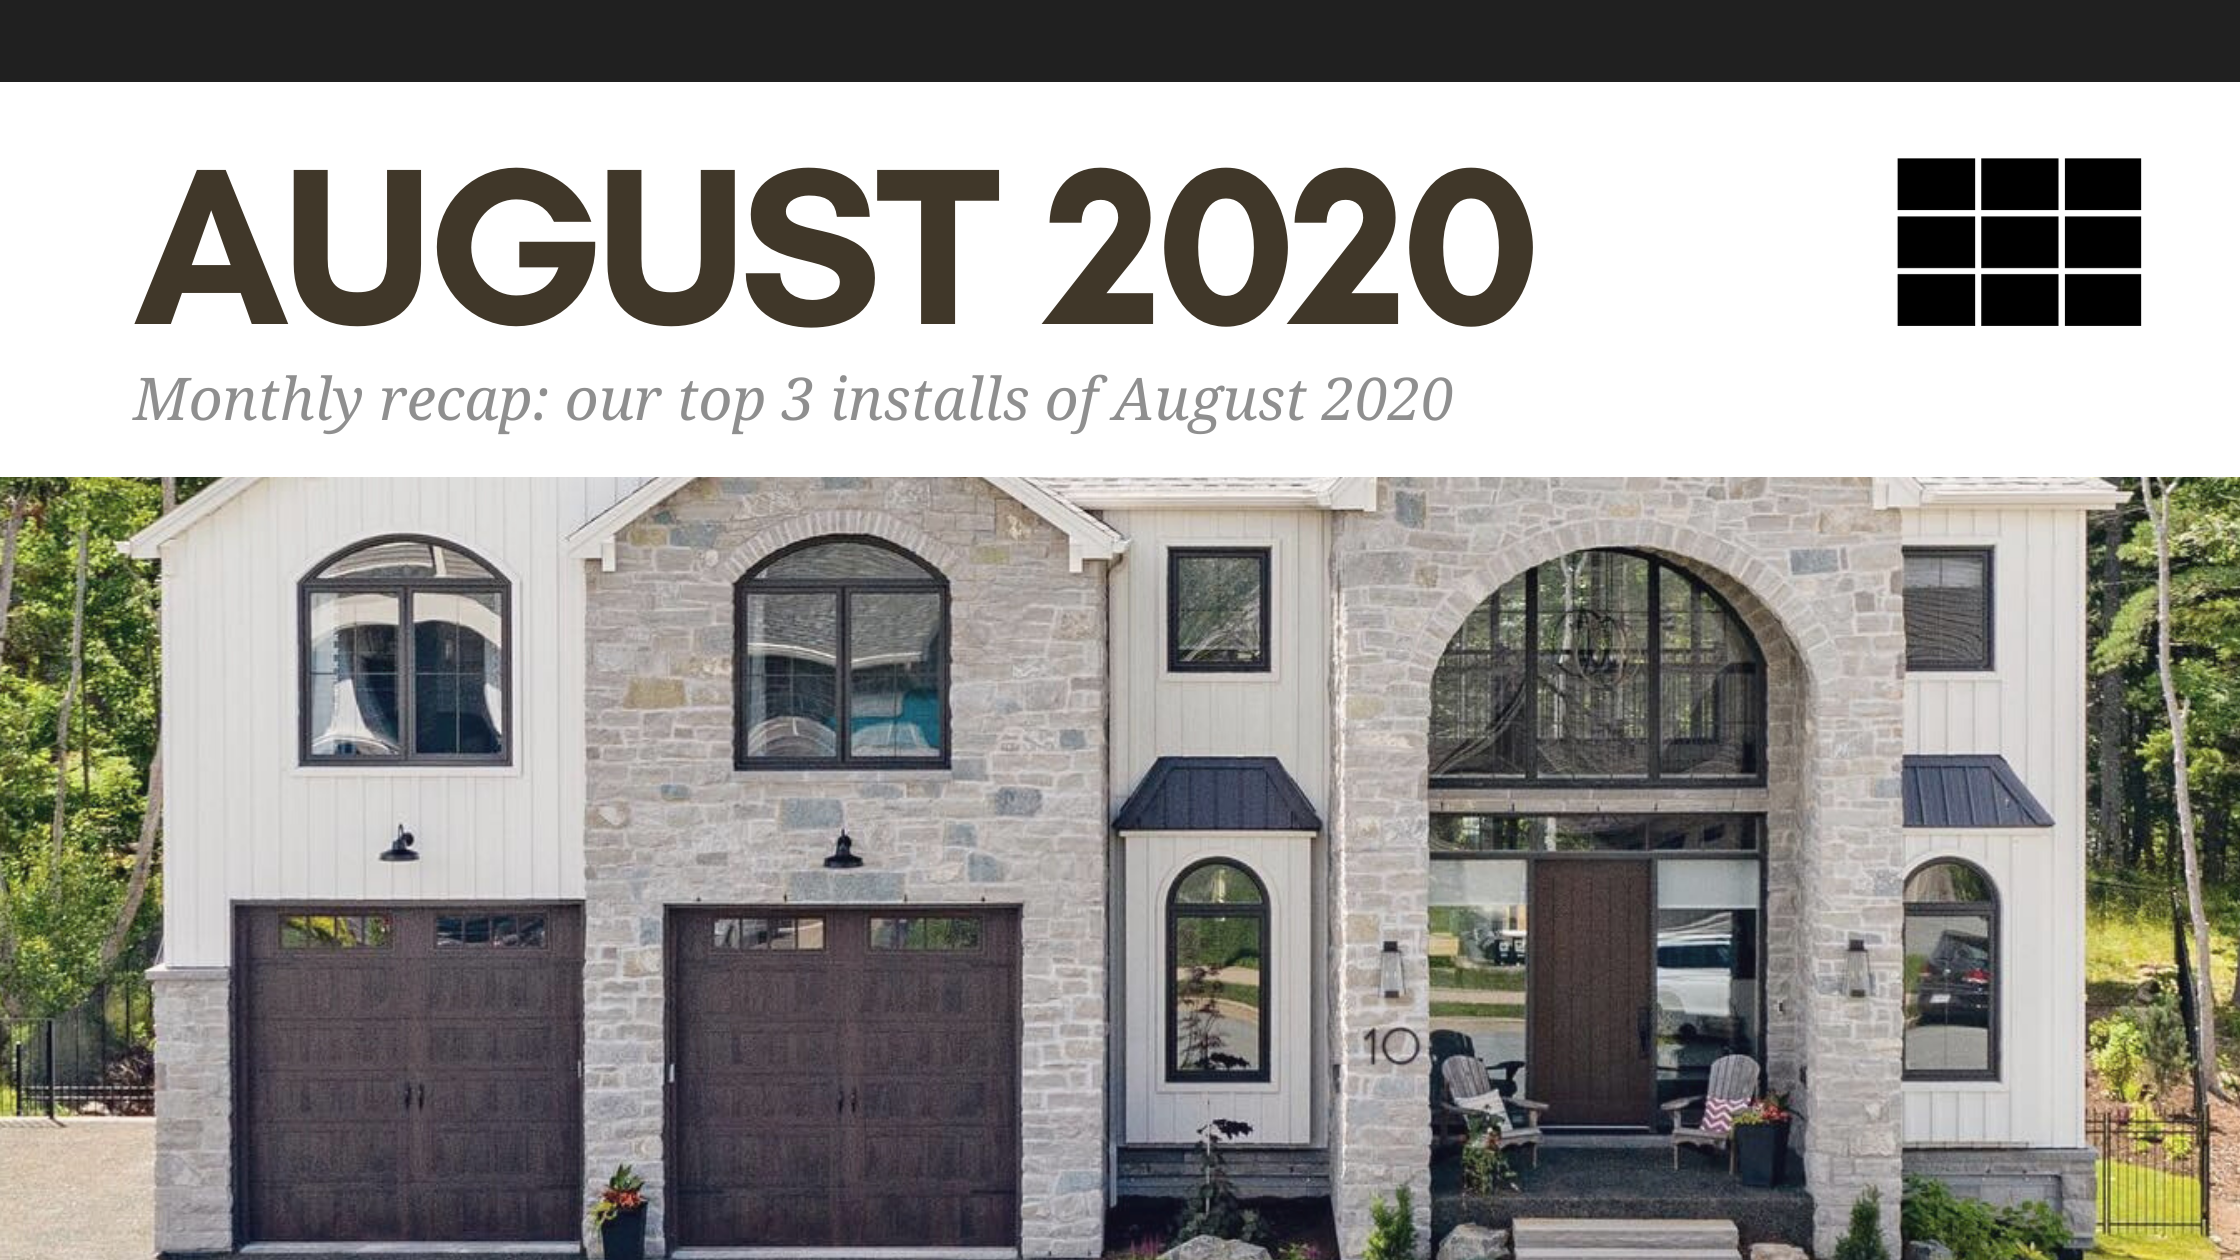 Monthly Recap: Our Top 3 Installs of August 2020